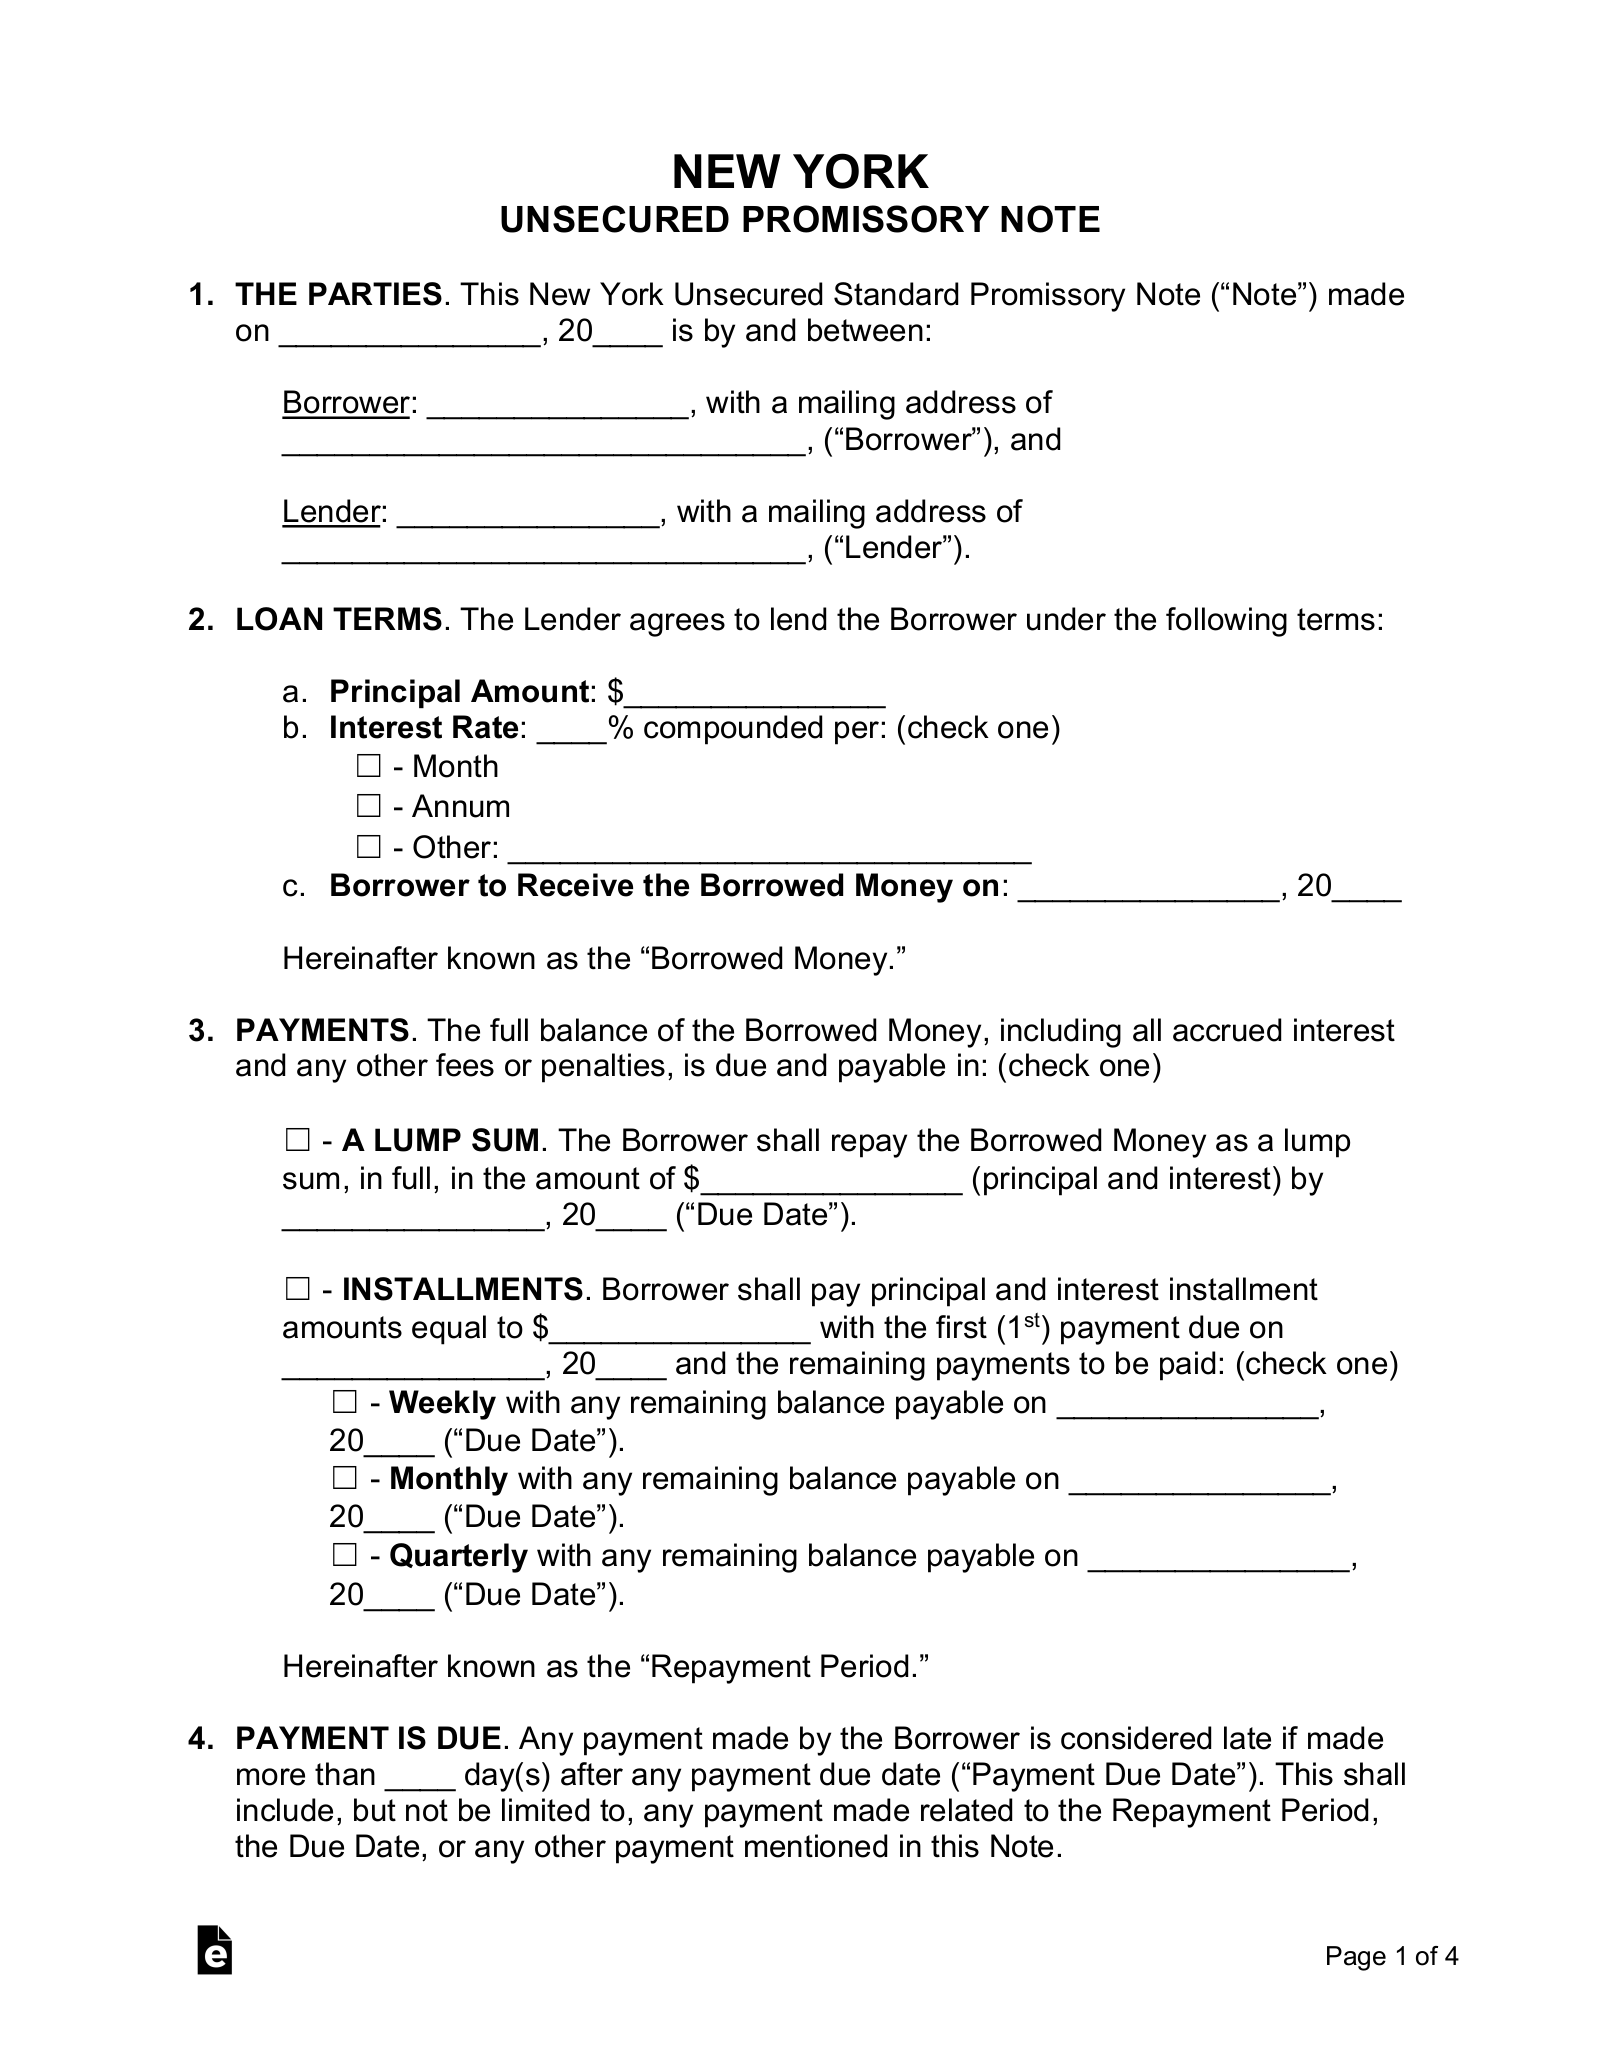 Free New York Unsecured Promissory Note Template   Word   PDF – eForms